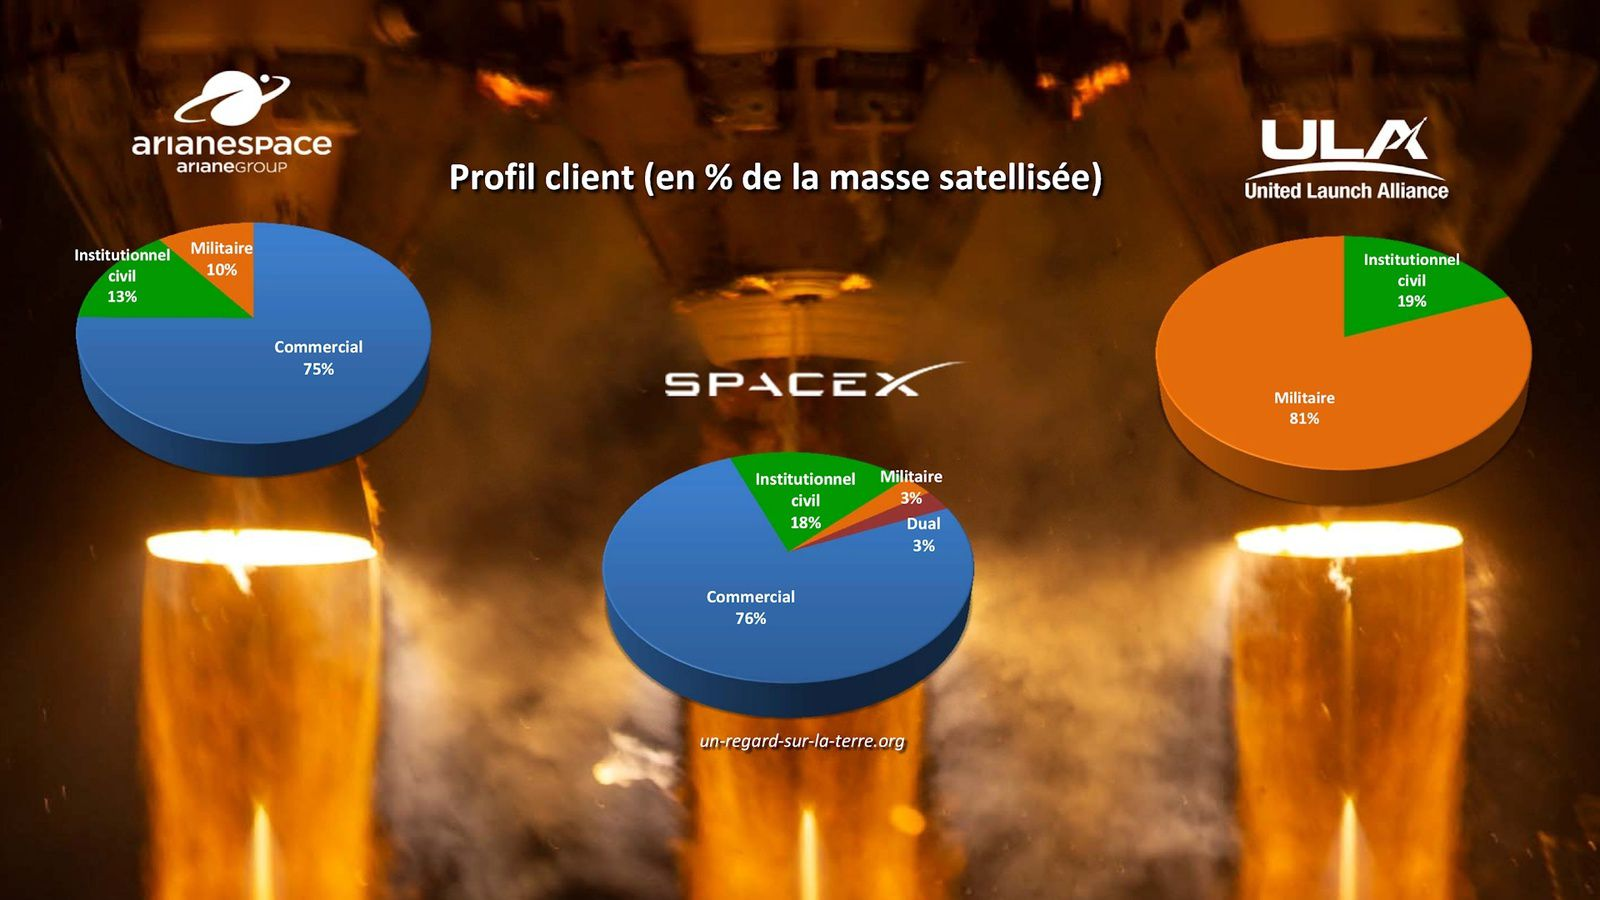 Année spatiale 2020 - Lancements orbitaux - Opérateurs de lancements - Space year in review - Arianespace - SpaceX - Rocket Lab - United Launch Alliance - Northrop Grumman - Commercial space - space market - customer profile